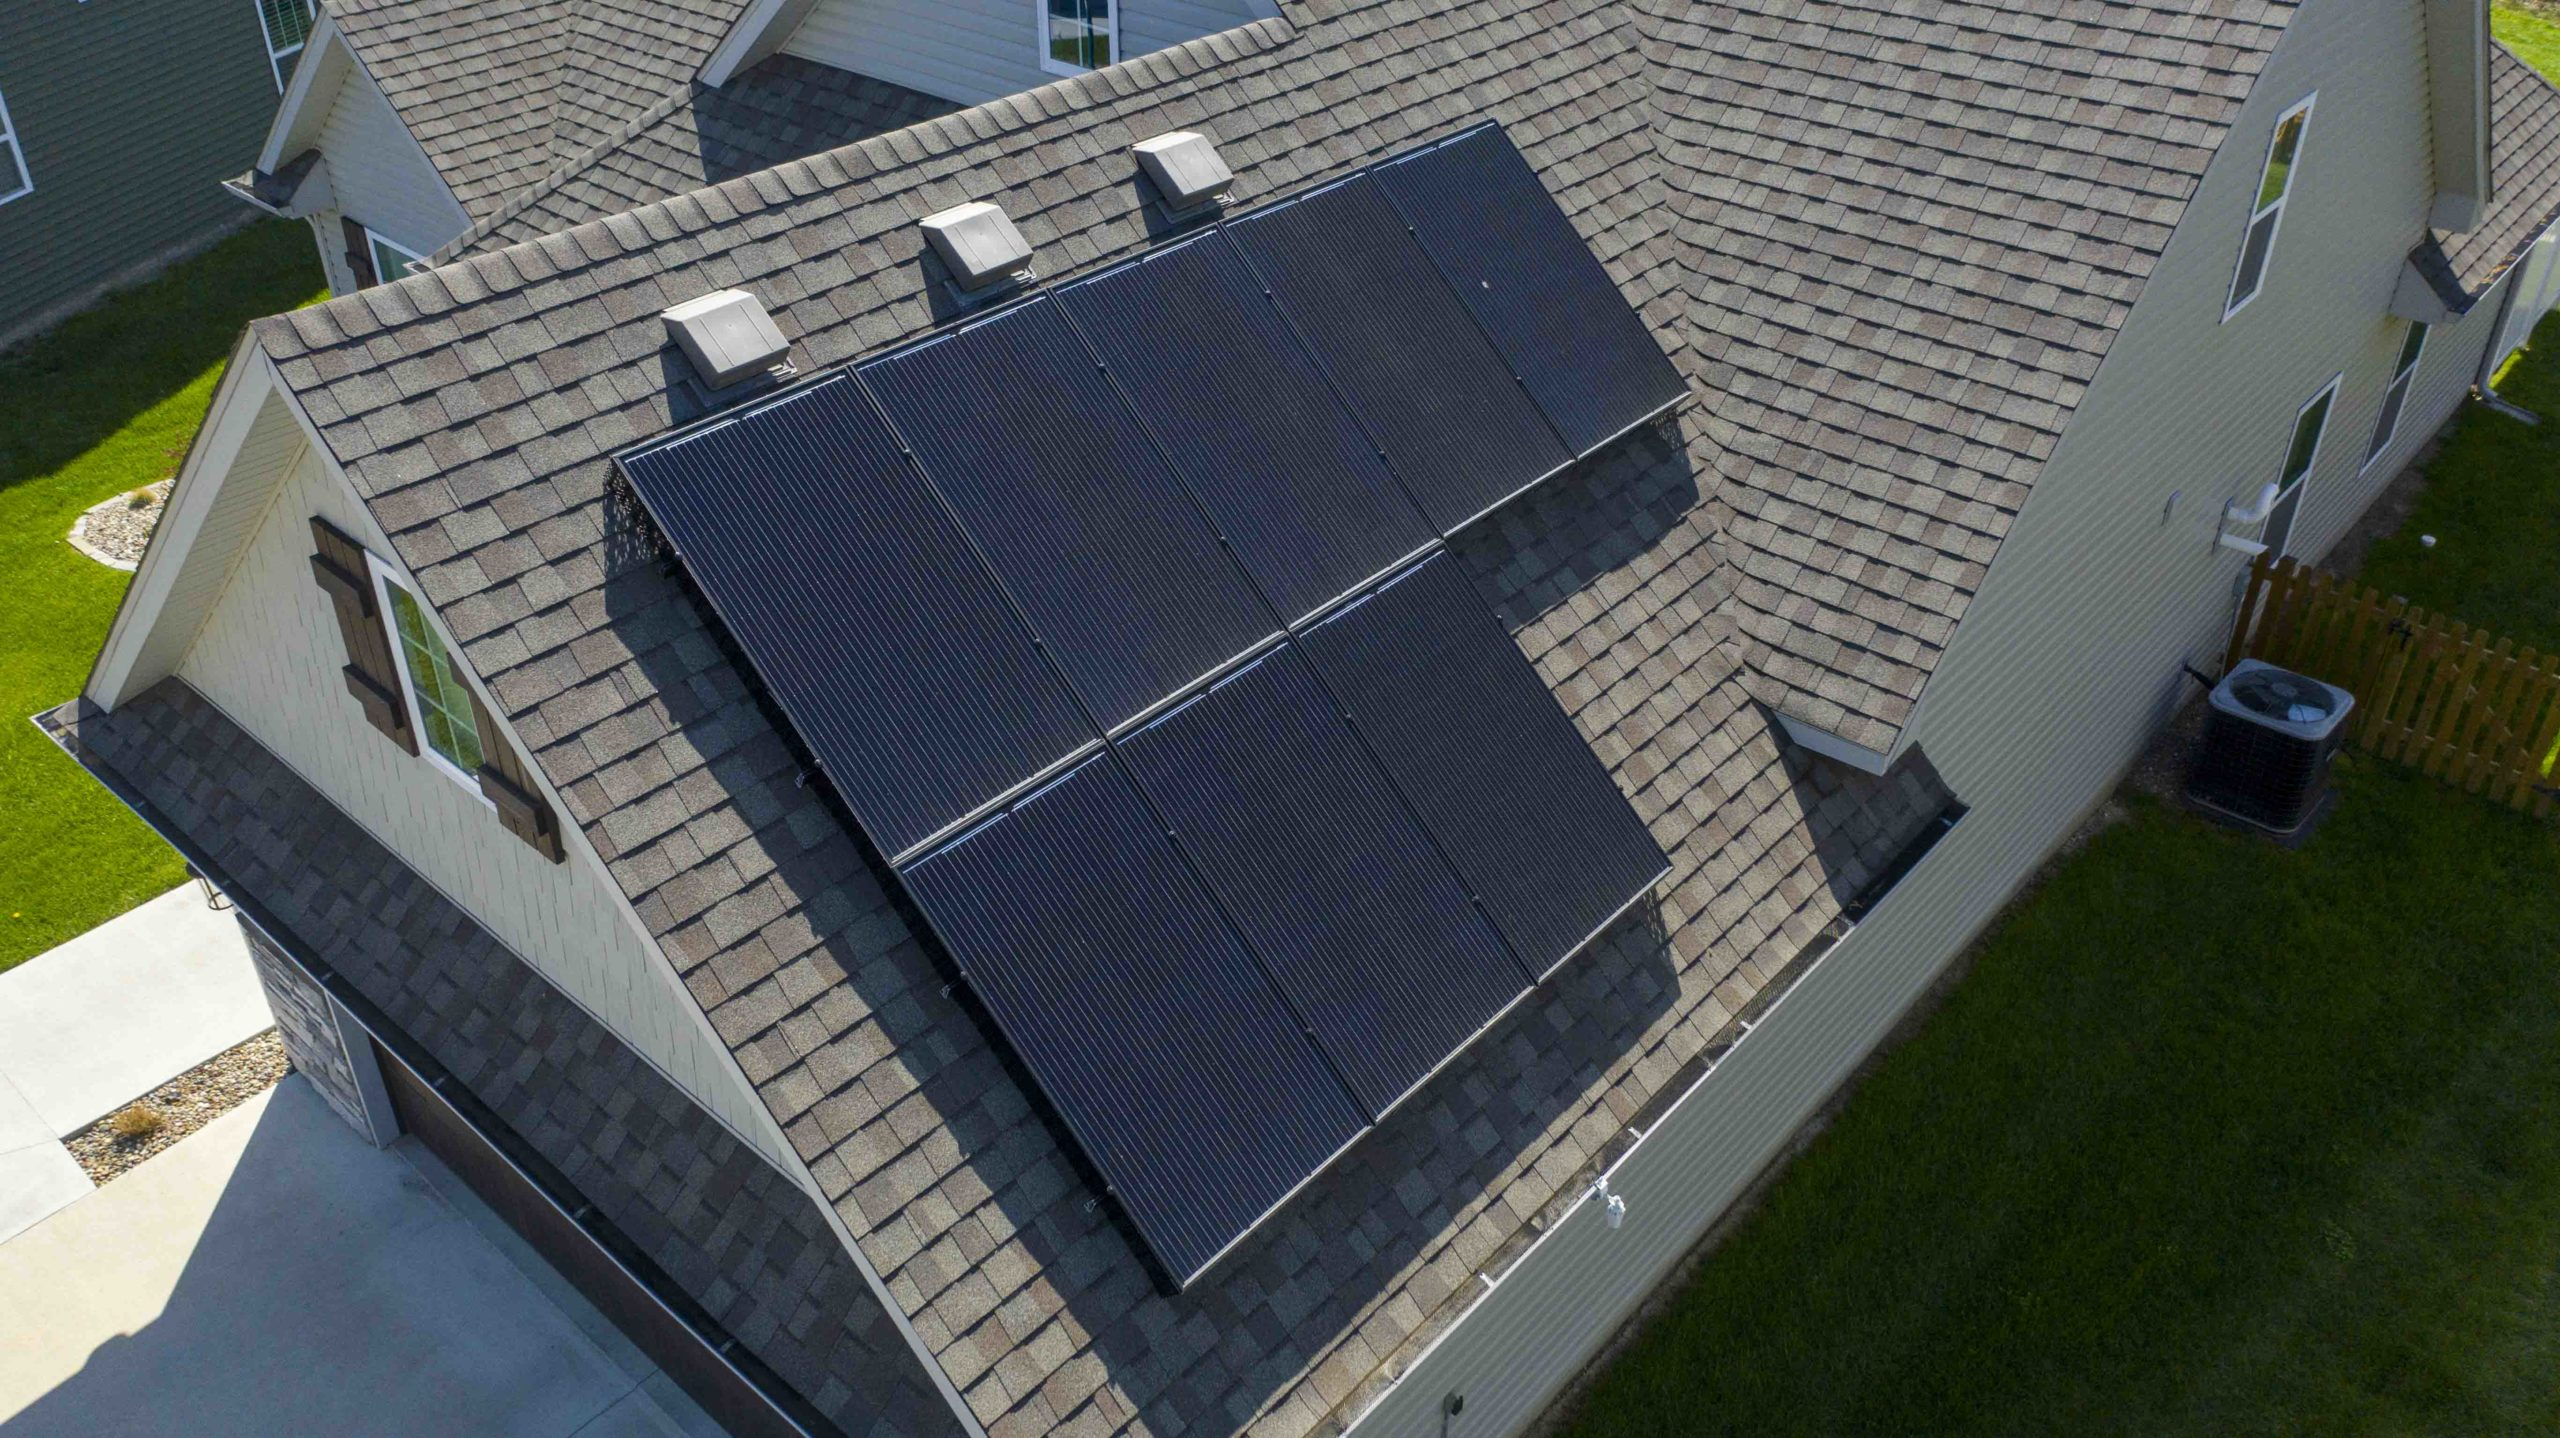 Even the garage roof on this southwest Columbia home has solar panels. The black panels look great on this dark roof.